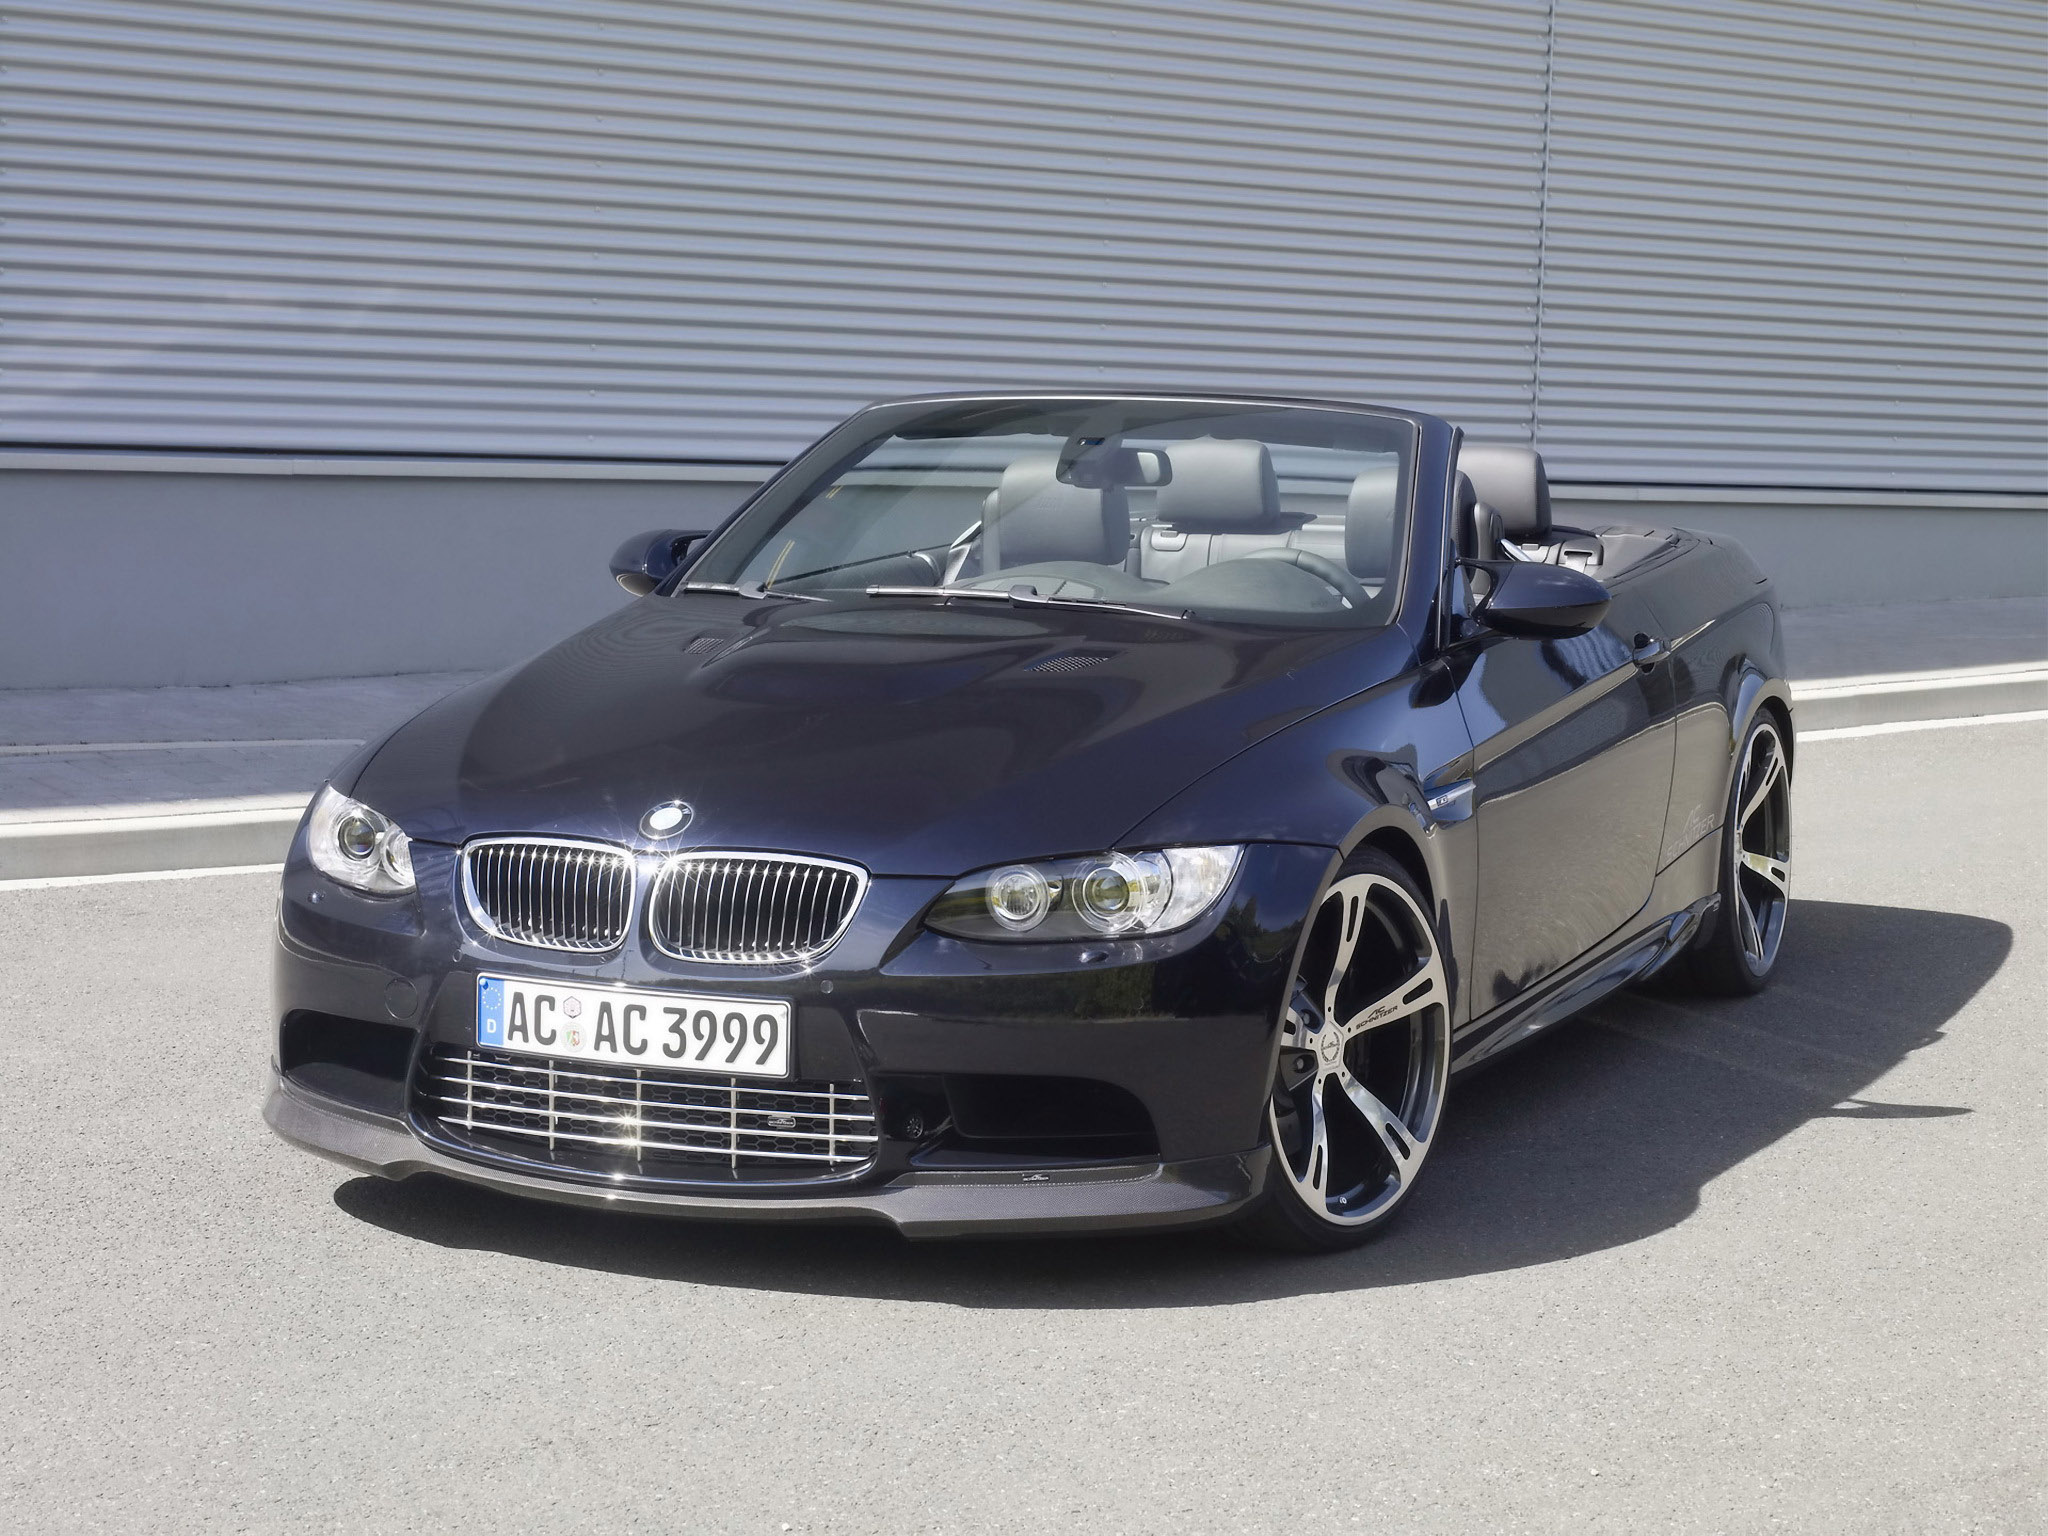 Cars bmw 3 series cabrio (e93) 2008